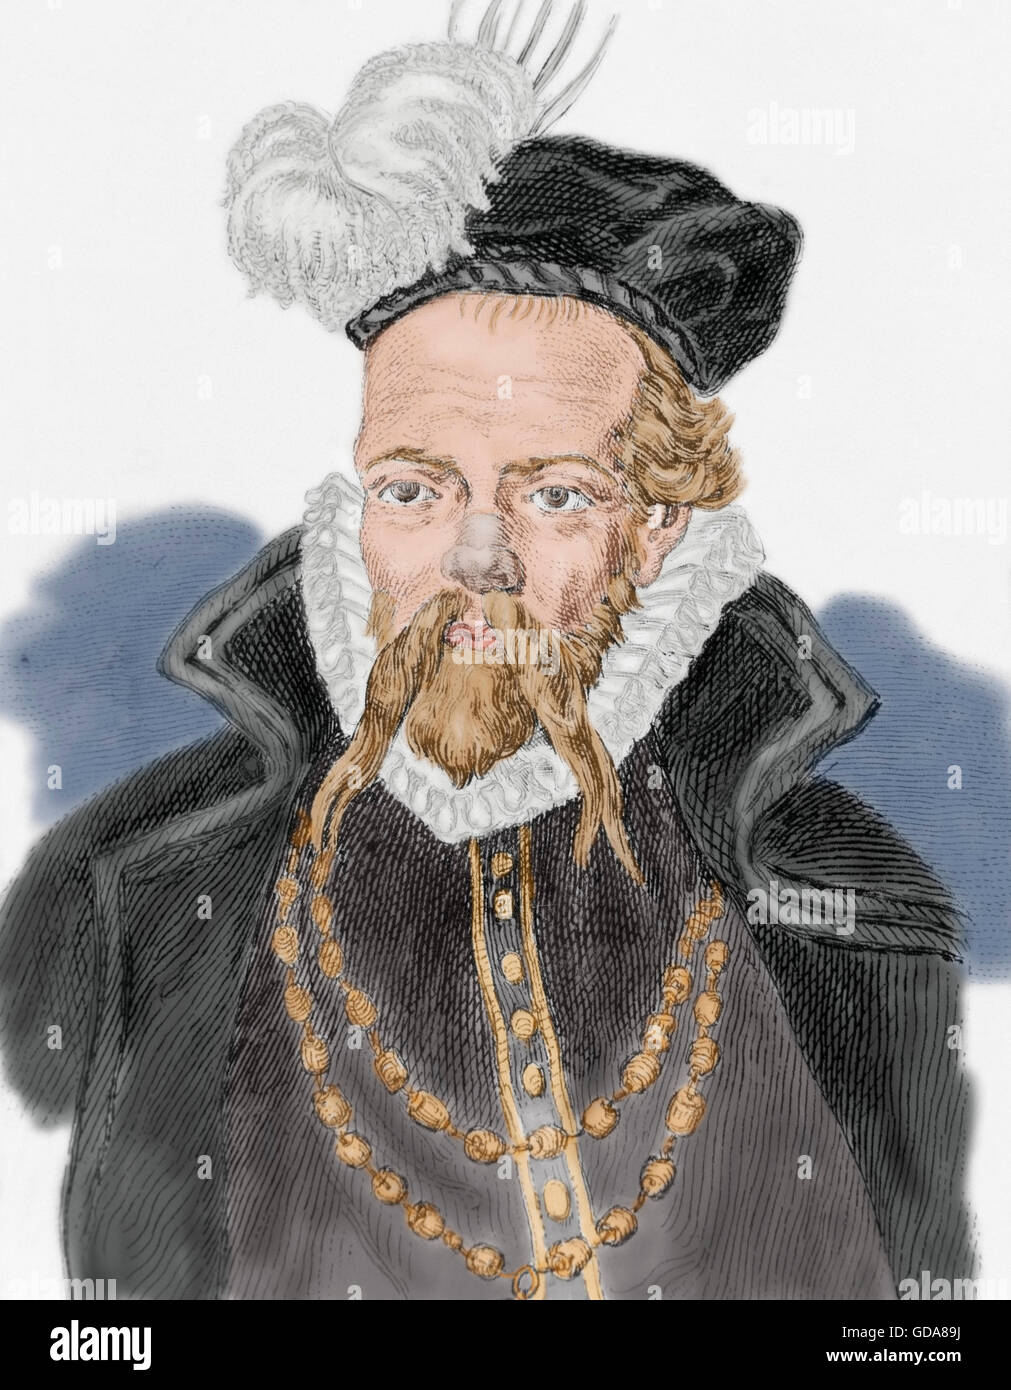 Tycho Brahe (1546-1601). Danish nobleman known for his astronomical and planetary observations. Portrait. Engraving. - Stock Image